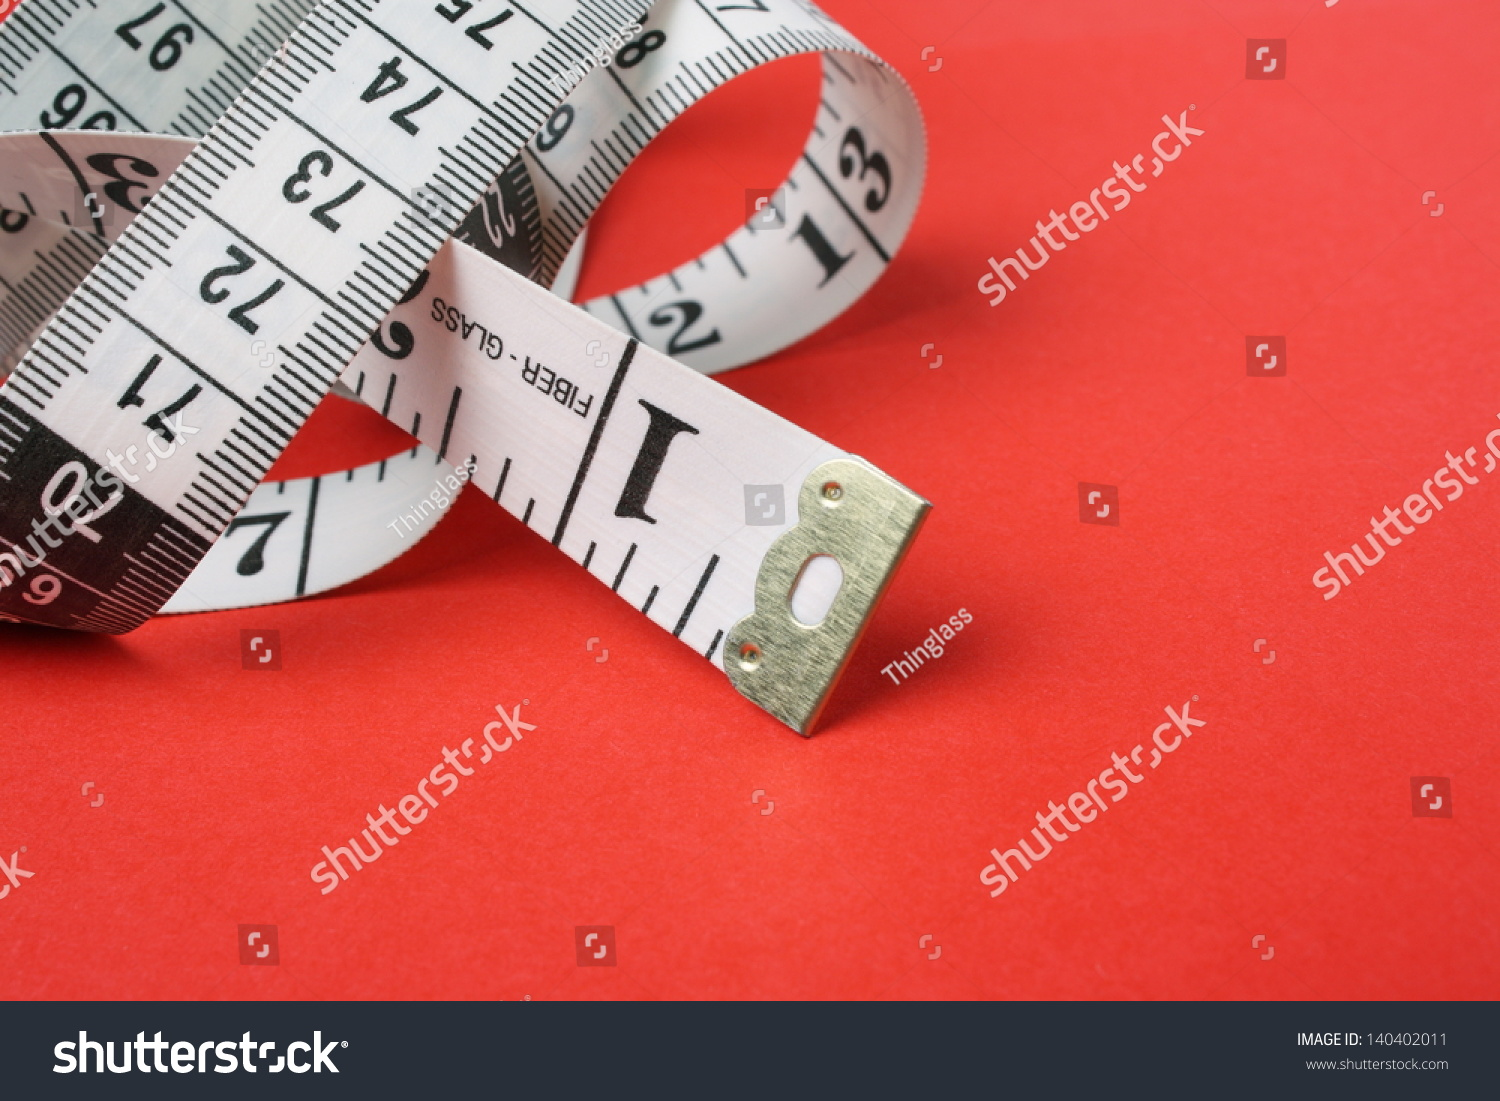 Curled white tape measure both inches stock photo 140402011 a curled up white tape measure with both inches and centimeters on a red paper background buycottarizona Image collections